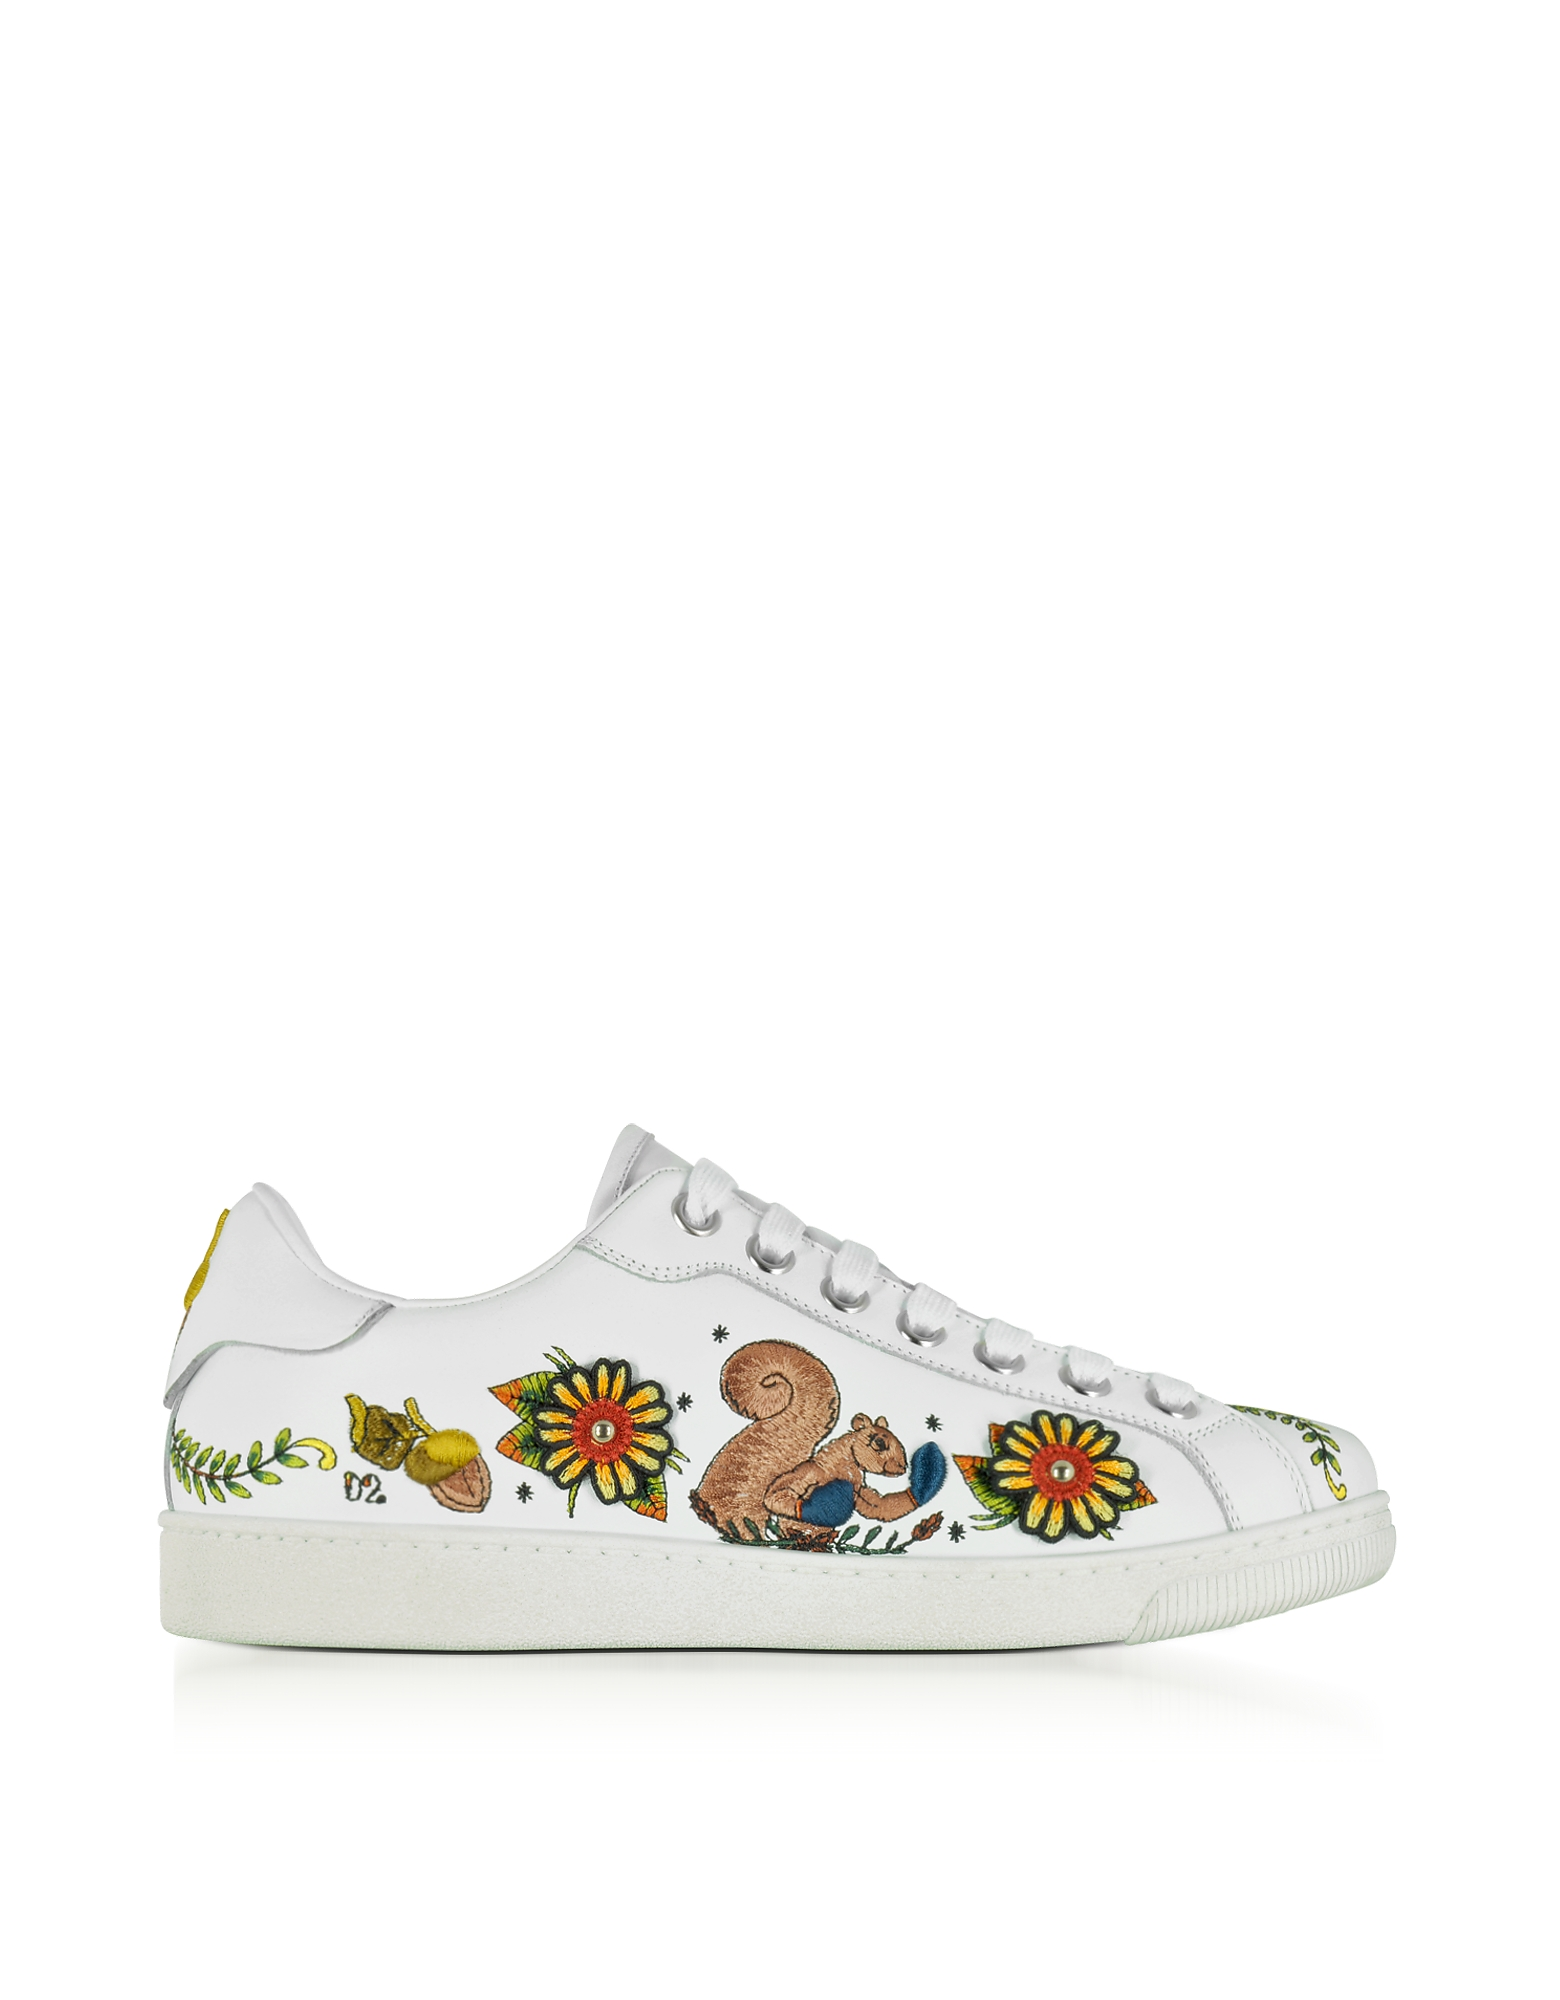 DSquared2 Shoes, Embroidered White Leather Men's Sneakers